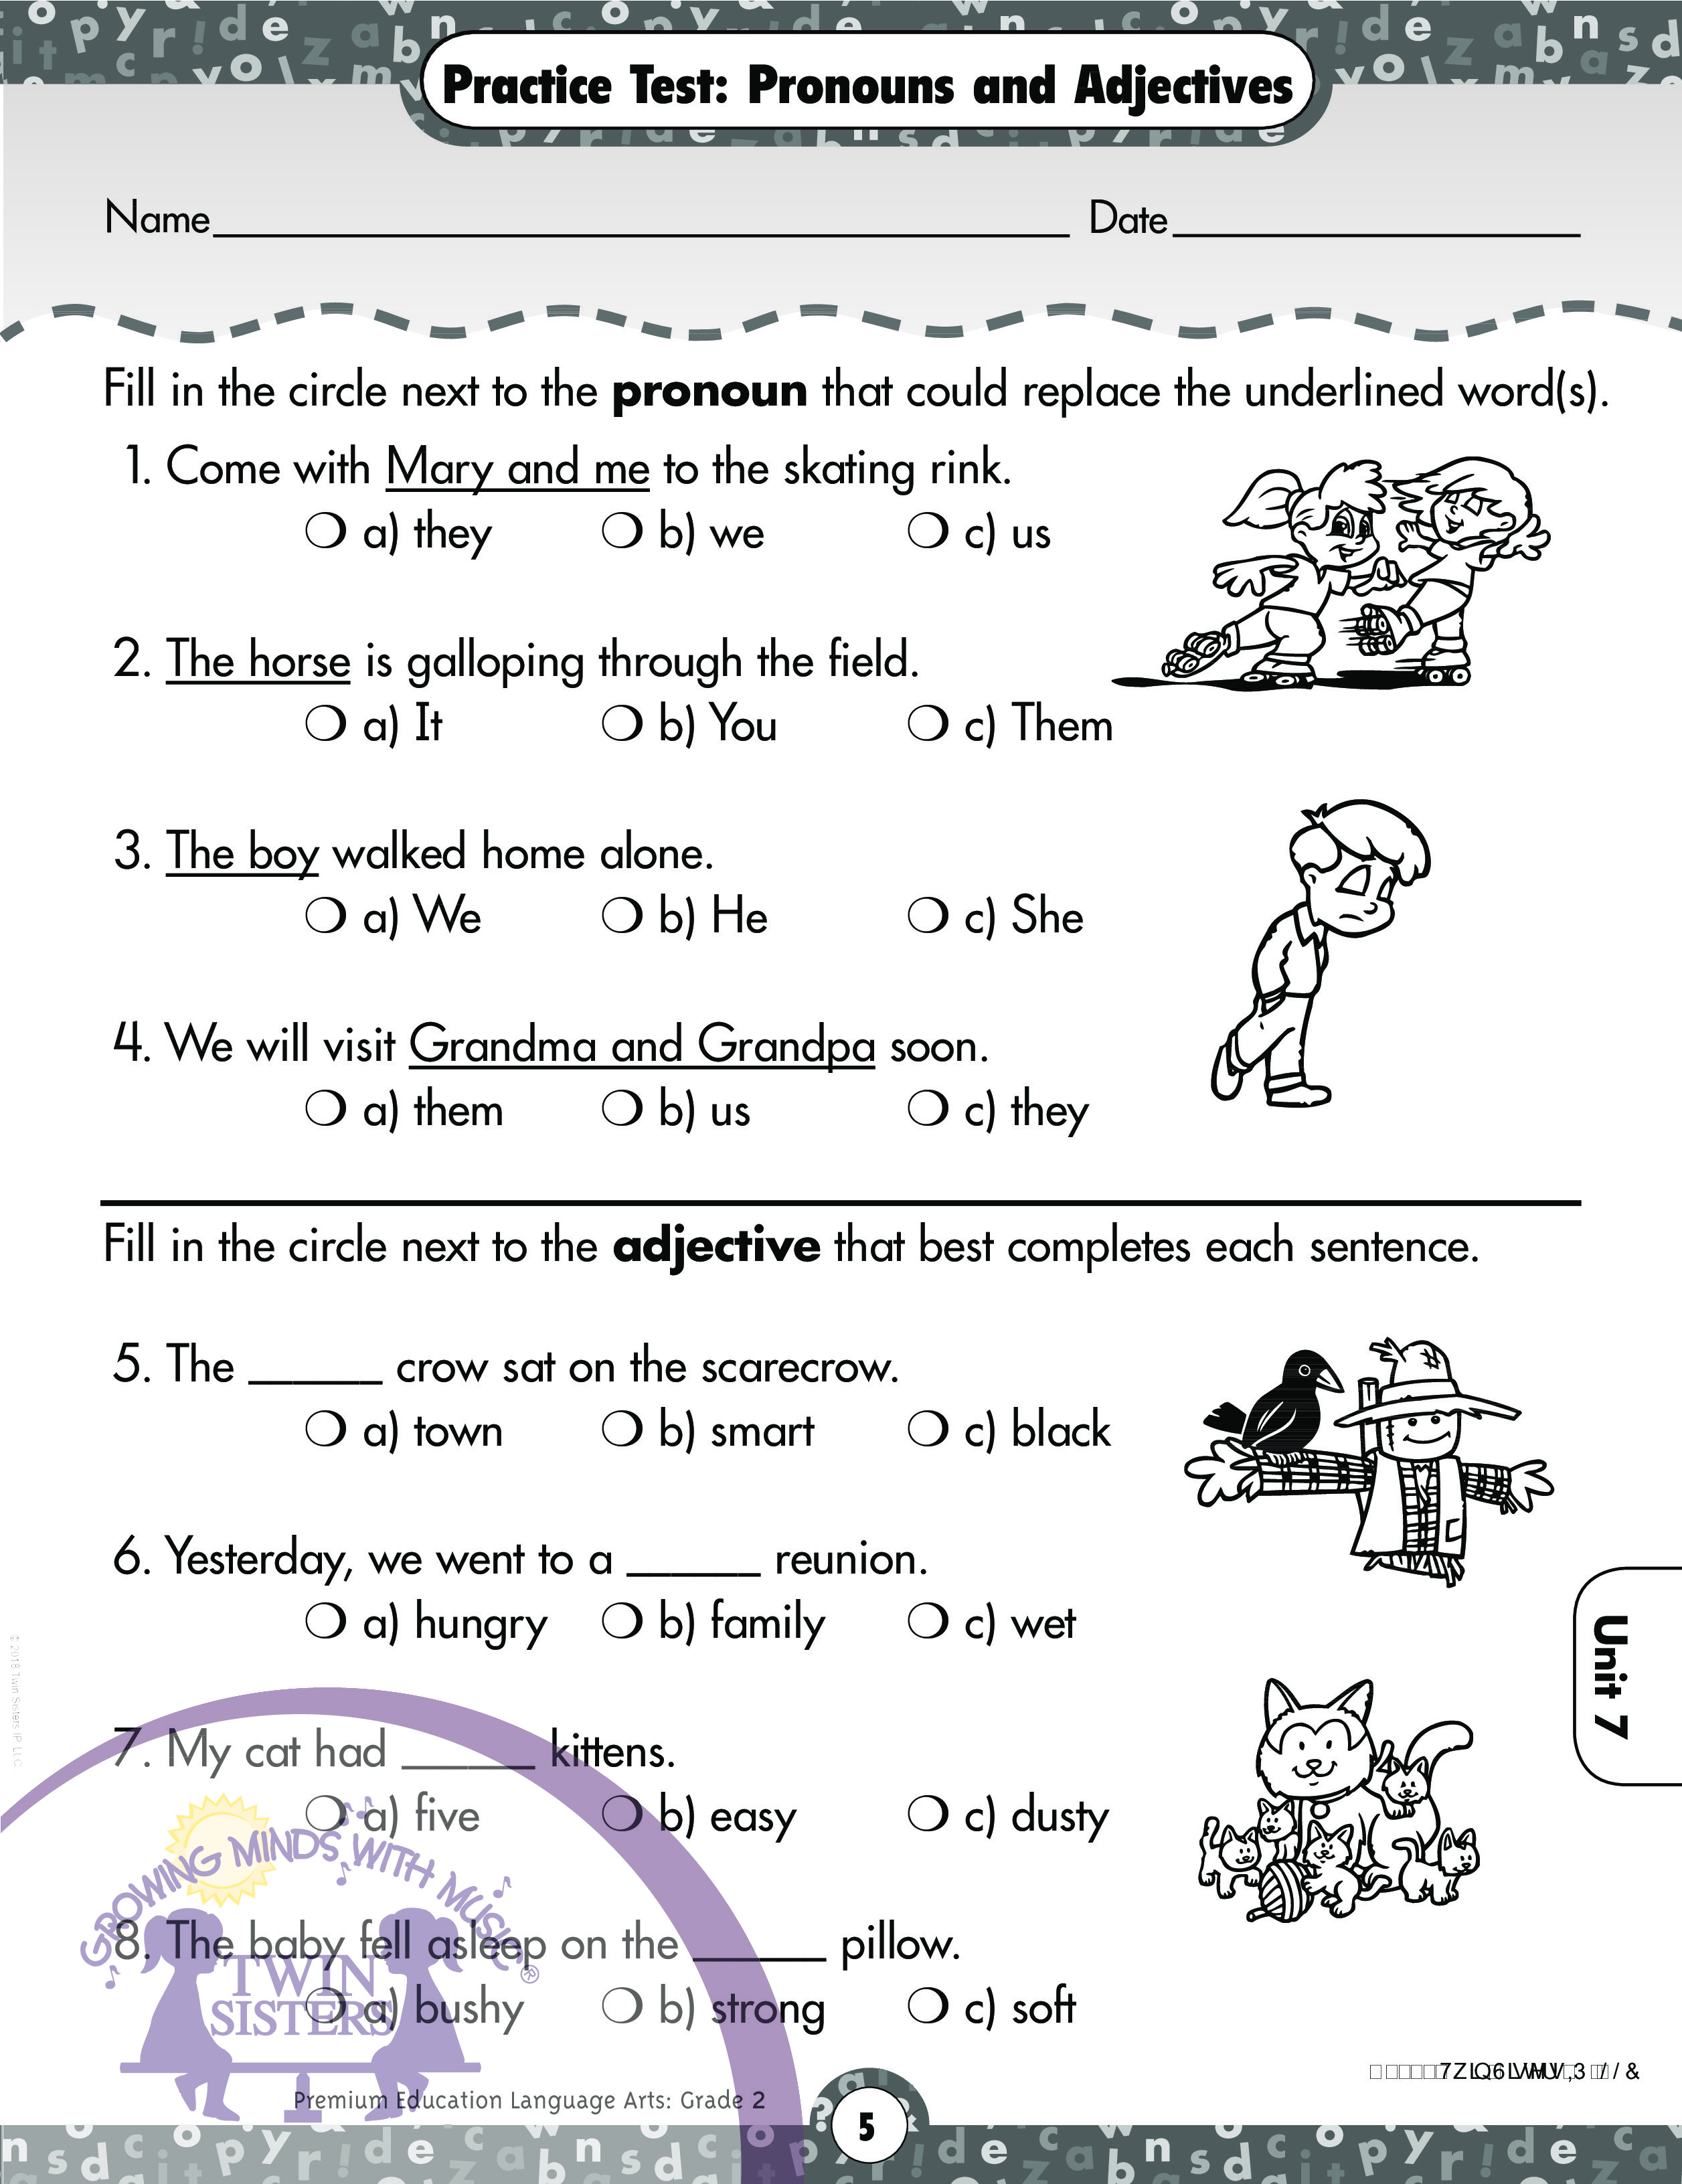 Language Arts Grade 2 Comprehensive Skills Practice Test